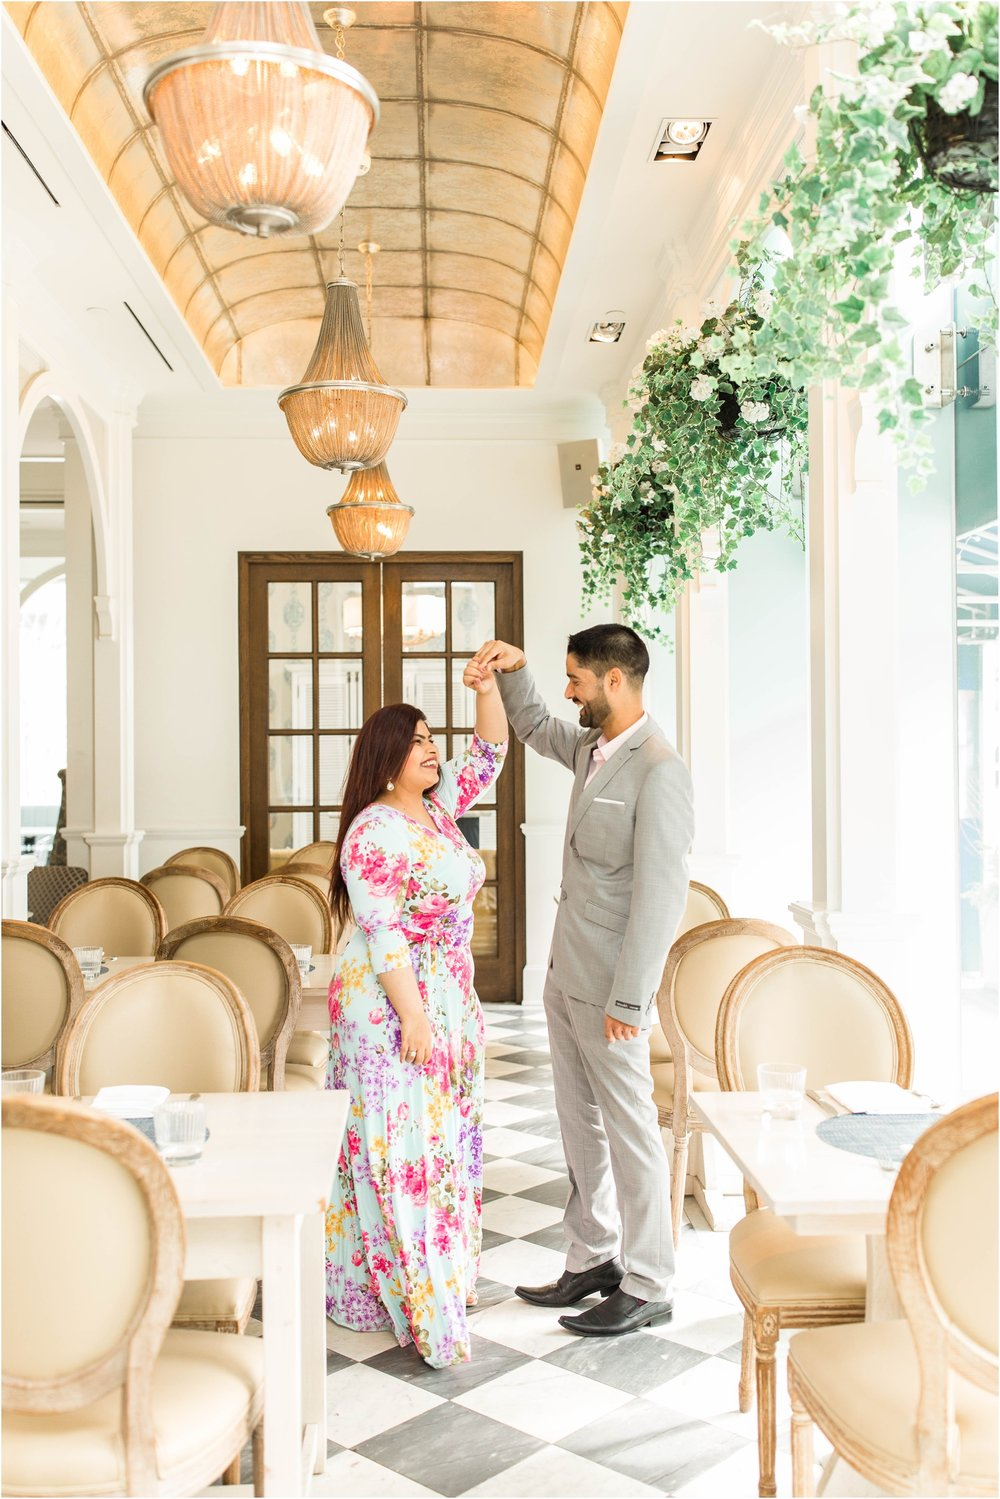 Colette-Grand-Cafe-Thompson-Hotel-Osgoode-Hall-Engagement-Session-Toronto-Mississauga-Brampton-Scarborough-GTA-Pakistani-Indian-Wedding-Engagement-Photographer-Photography_0002.jpg